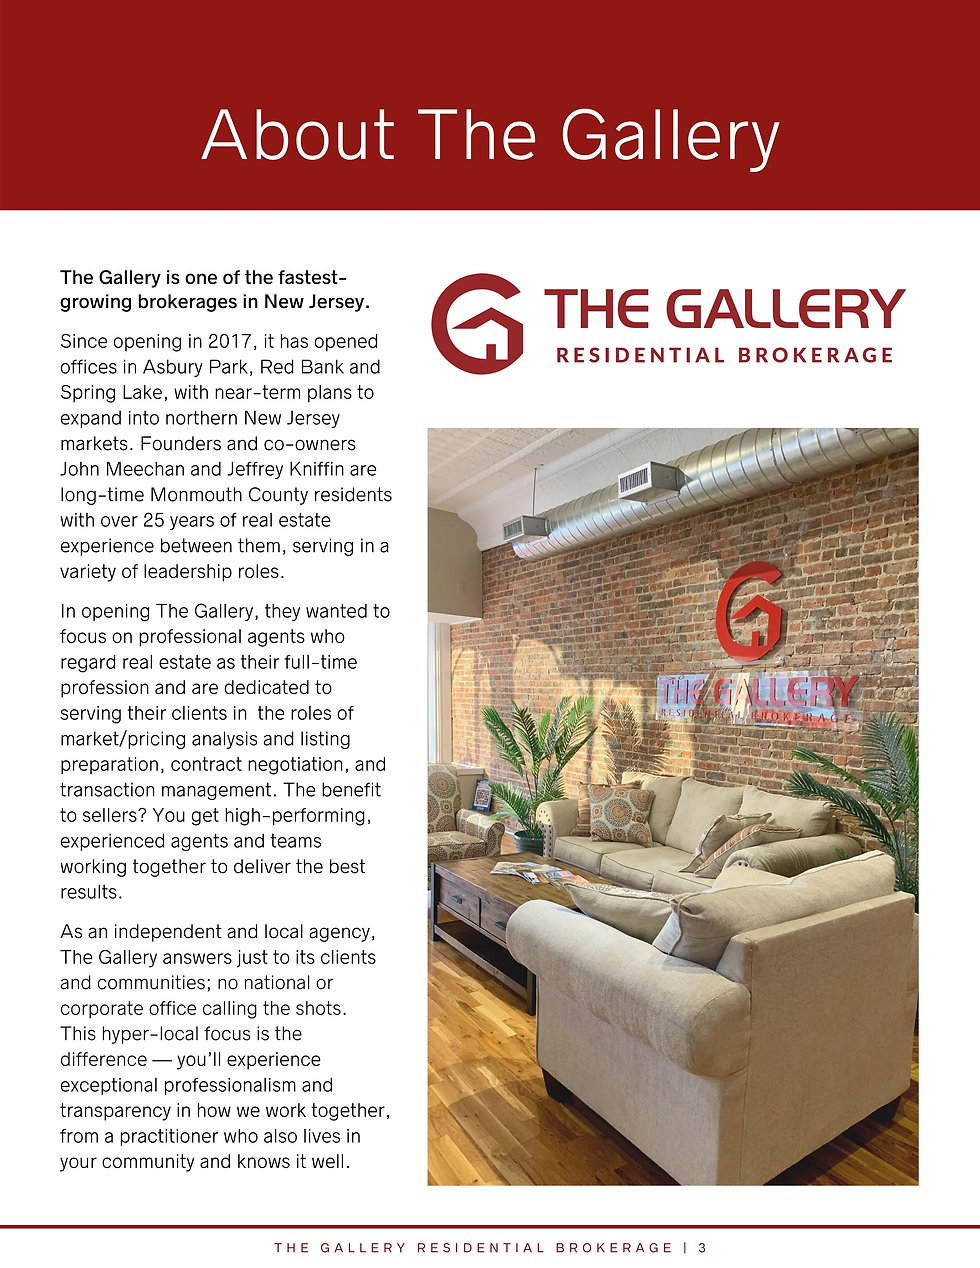 About The Gallery Residential Brokerage